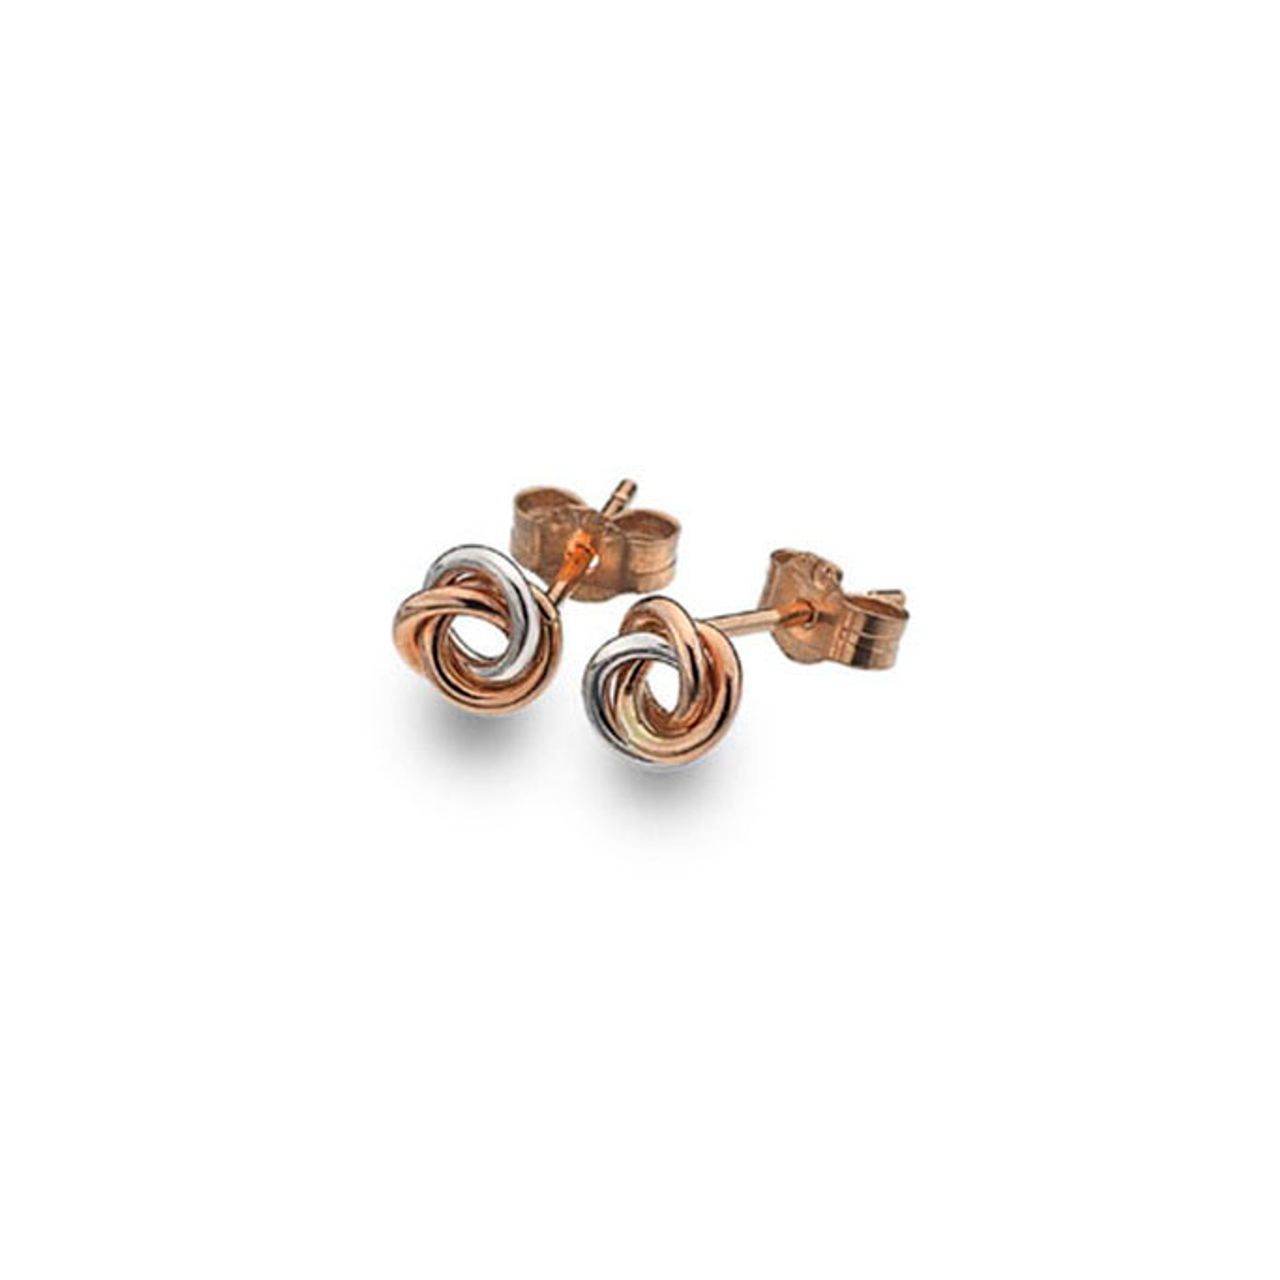 105bf5d6e6a6b 9ct Rose & White Gold Knot Stud Earrings